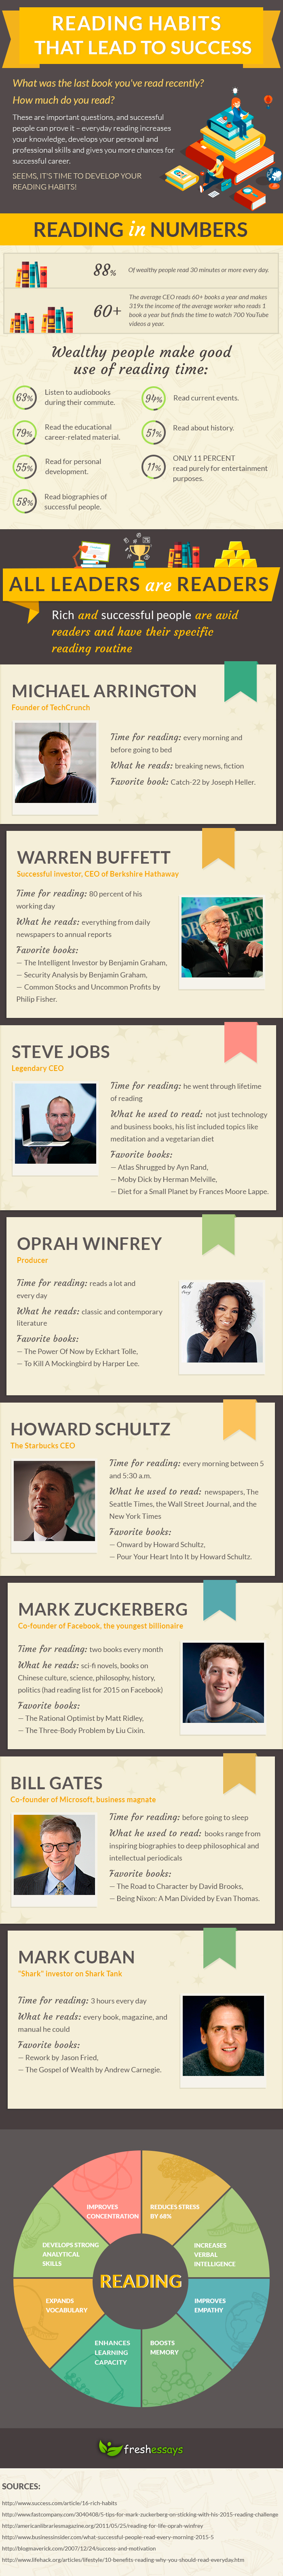 Reading Habits that lead to success infographic | From the blog of Nicholas C. Rossis, author of science fiction, the Pearseus epic fantasy series and children's books